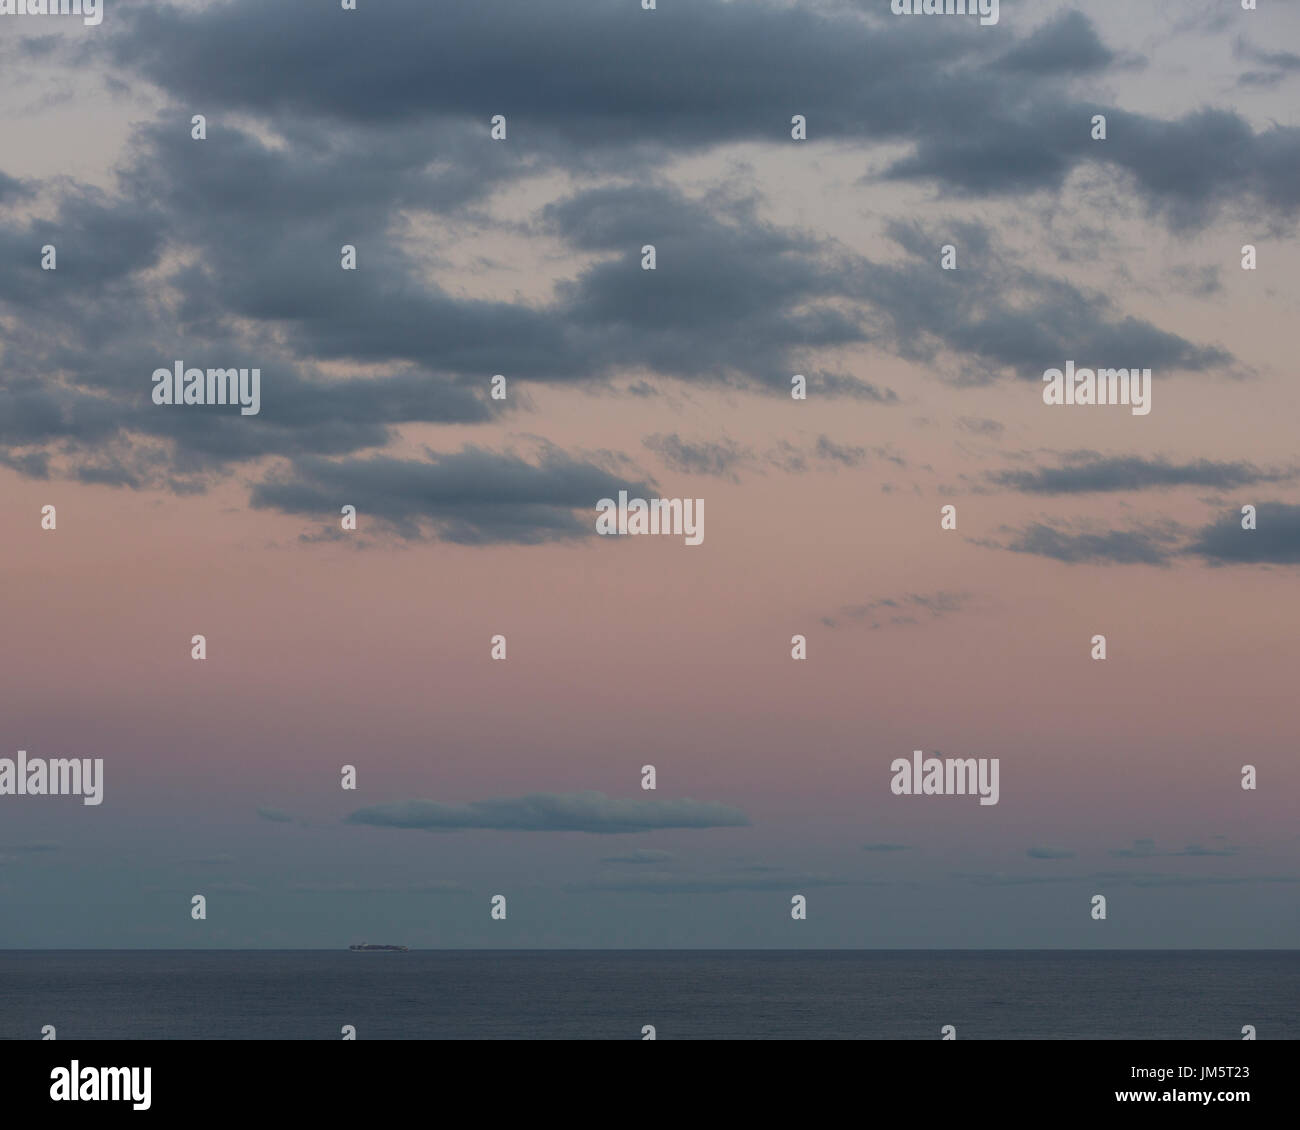 skyline sky skies digital overlay Stock Photo: 150104699 - Alamy